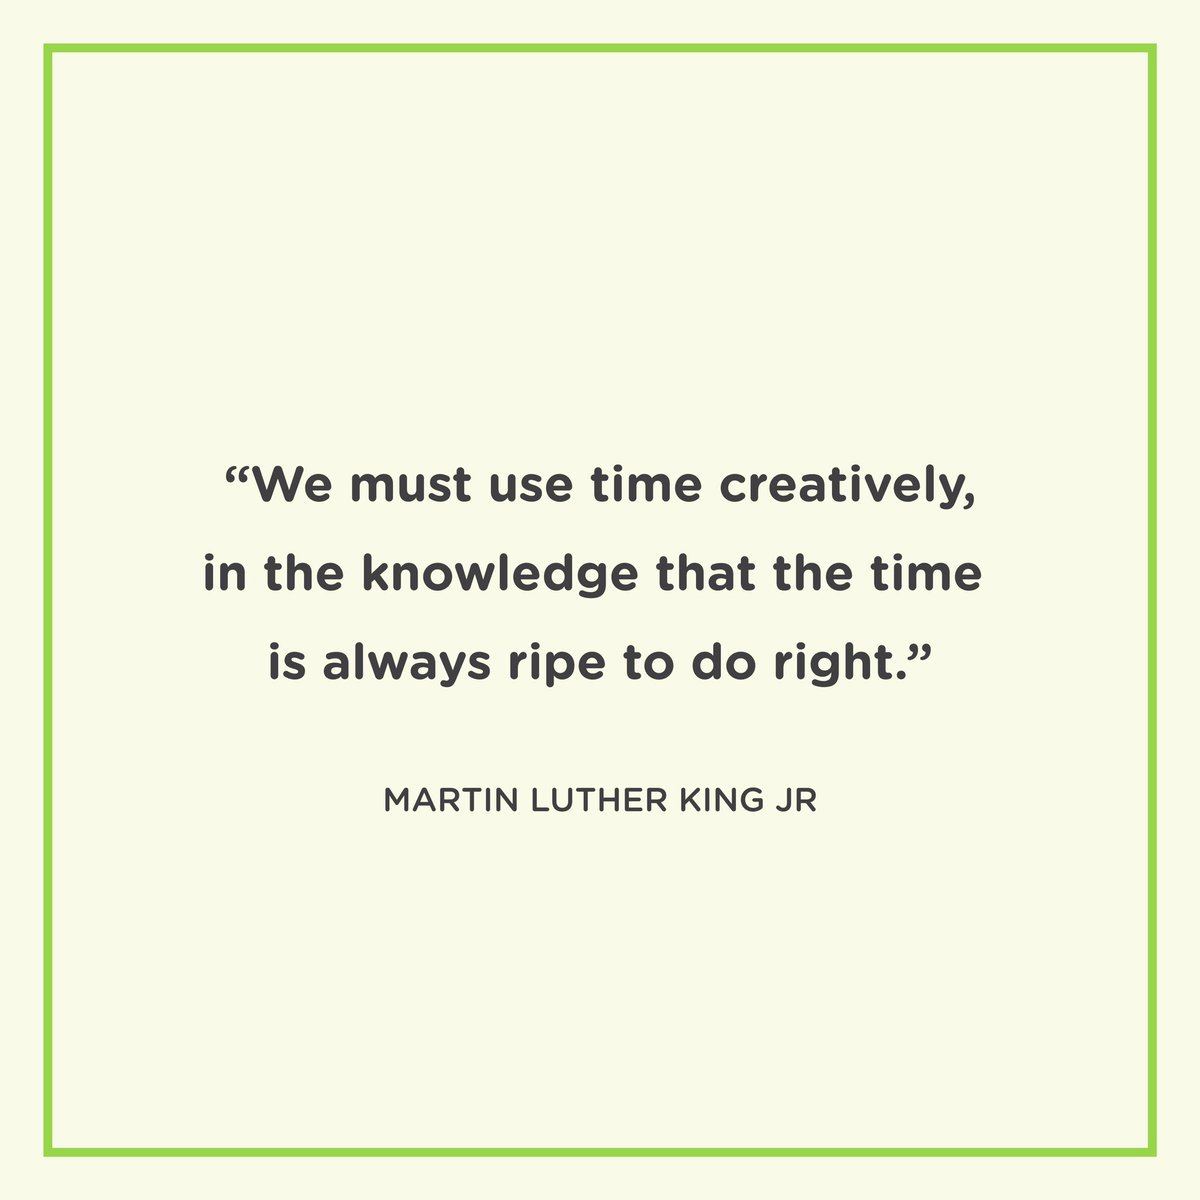 """We must use time creatively, in the knowledge that the time is always ripe to do right."" 🖤  #mlk #mlkquotes #mlkday #motivationalquotes #motivationmonday"